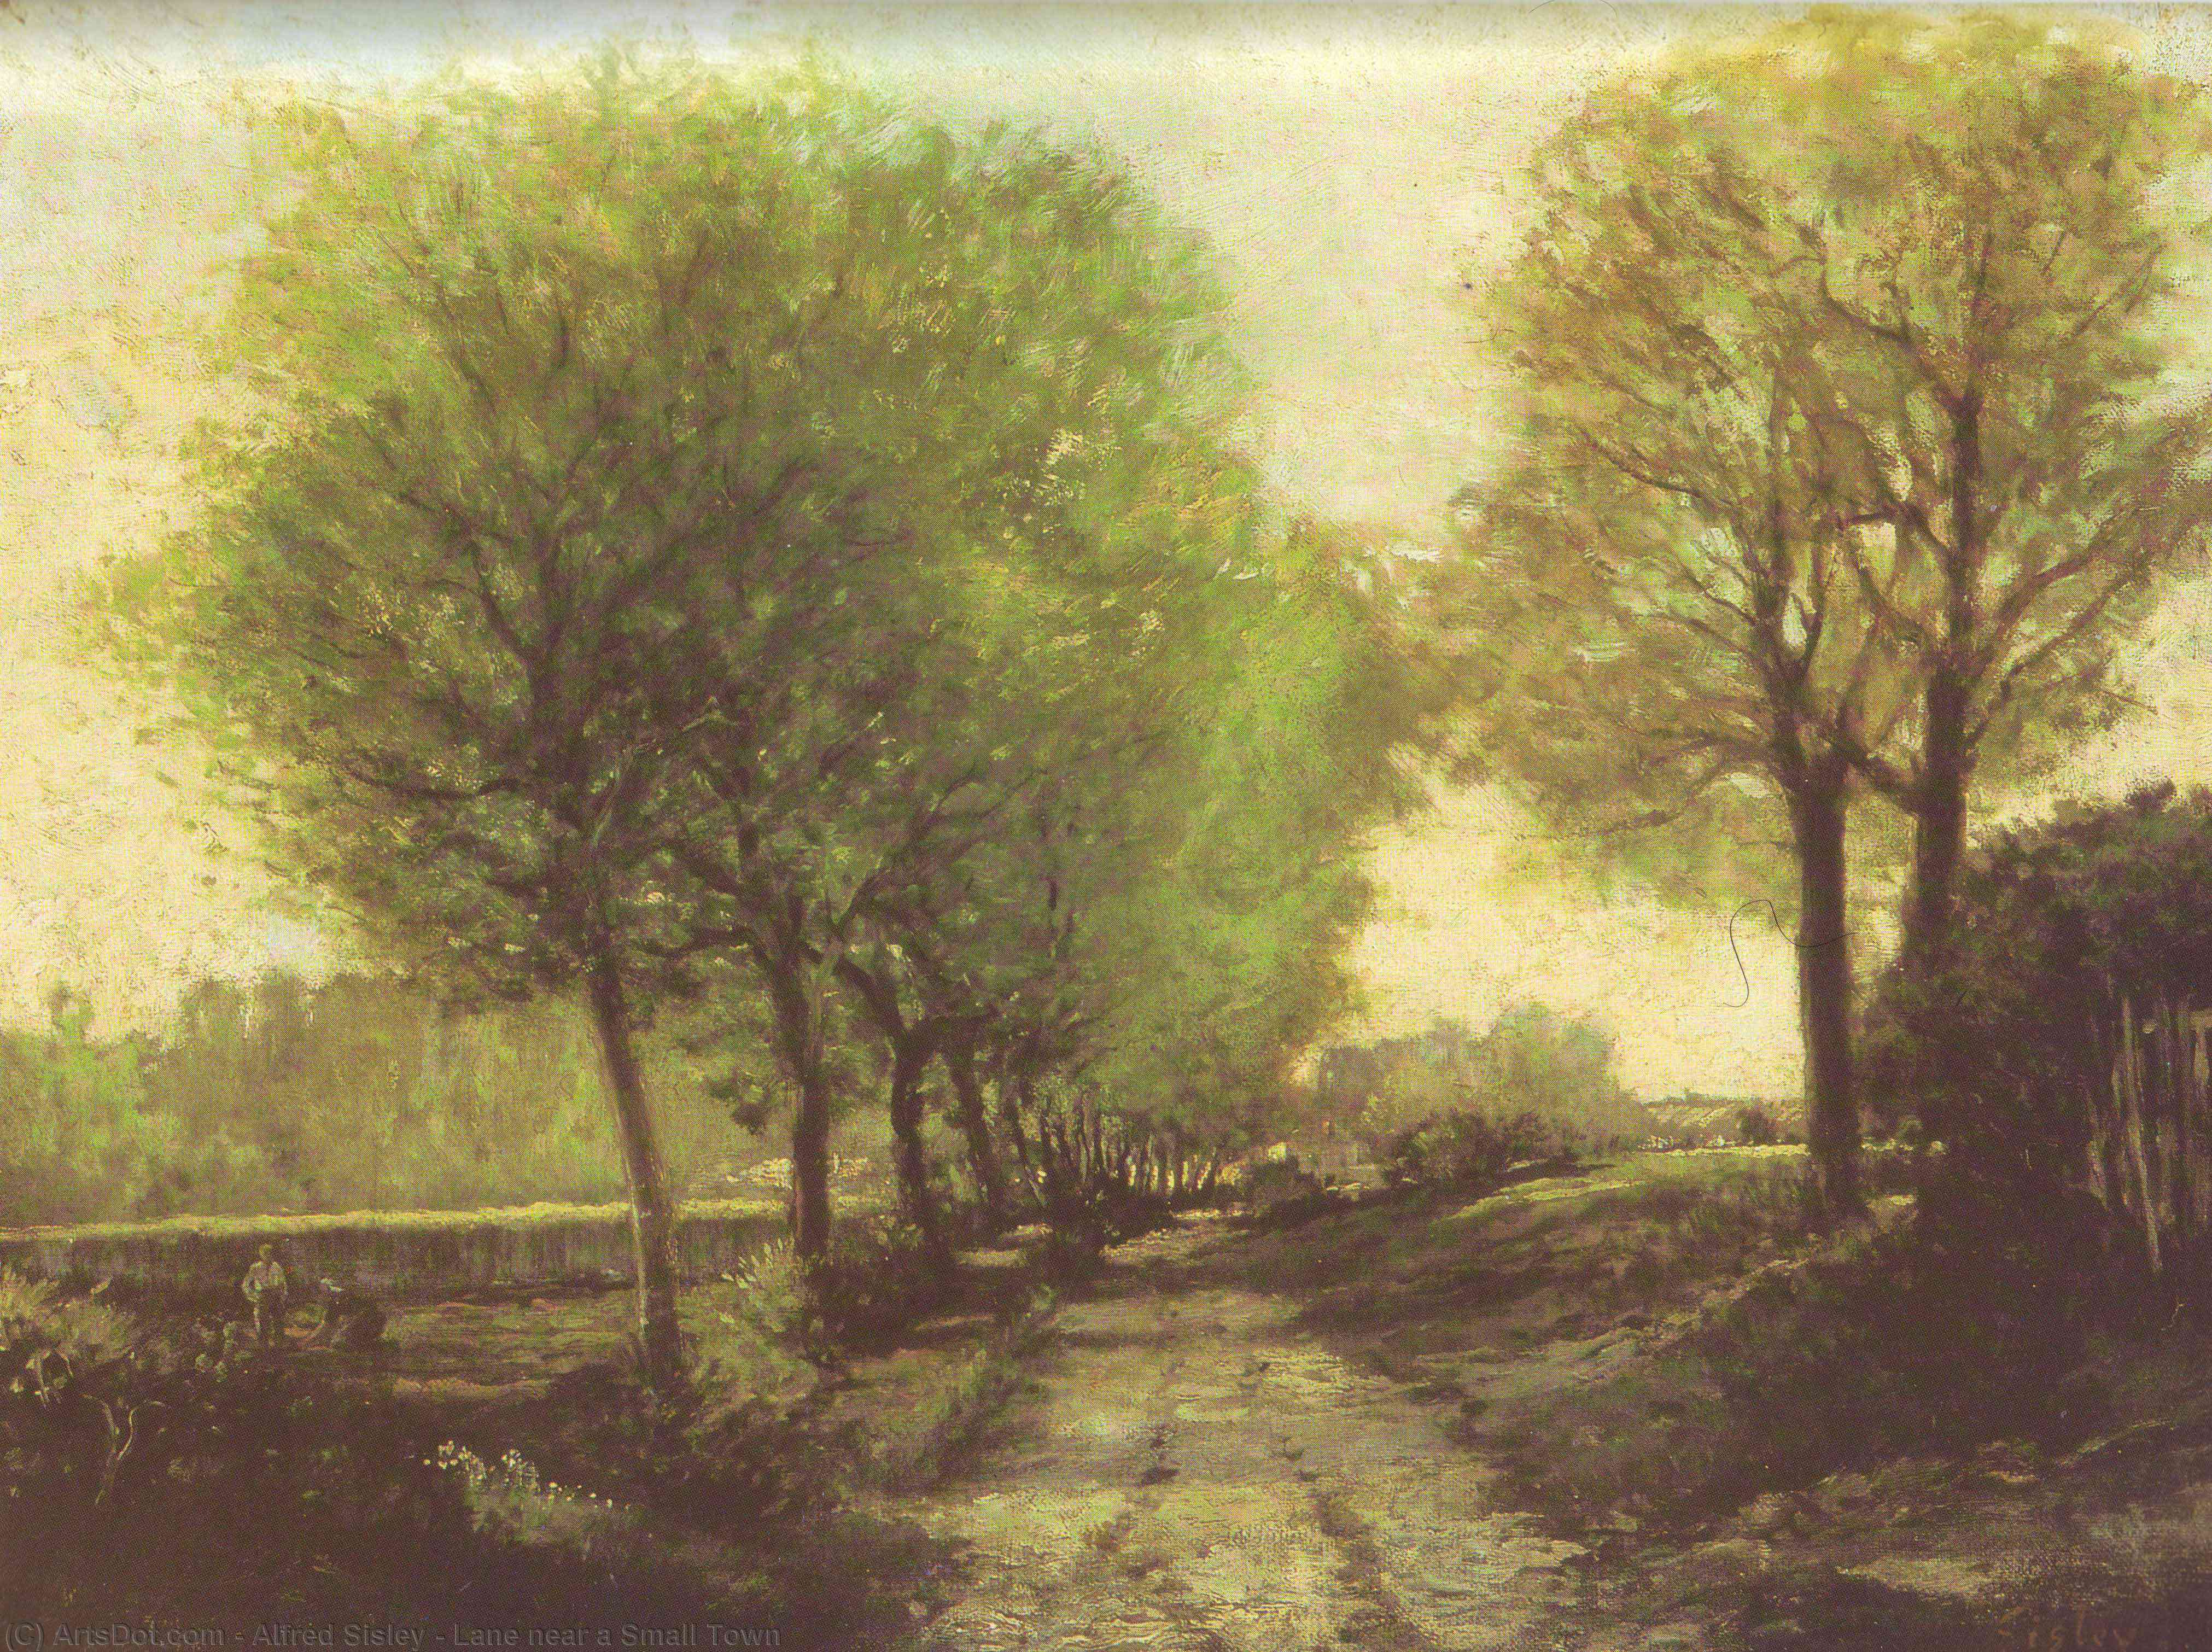 Wikioo.org - The Encyclopedia of Fine Arts - Painting, Artwork by Alfred Sisley - Lane near a Small Town